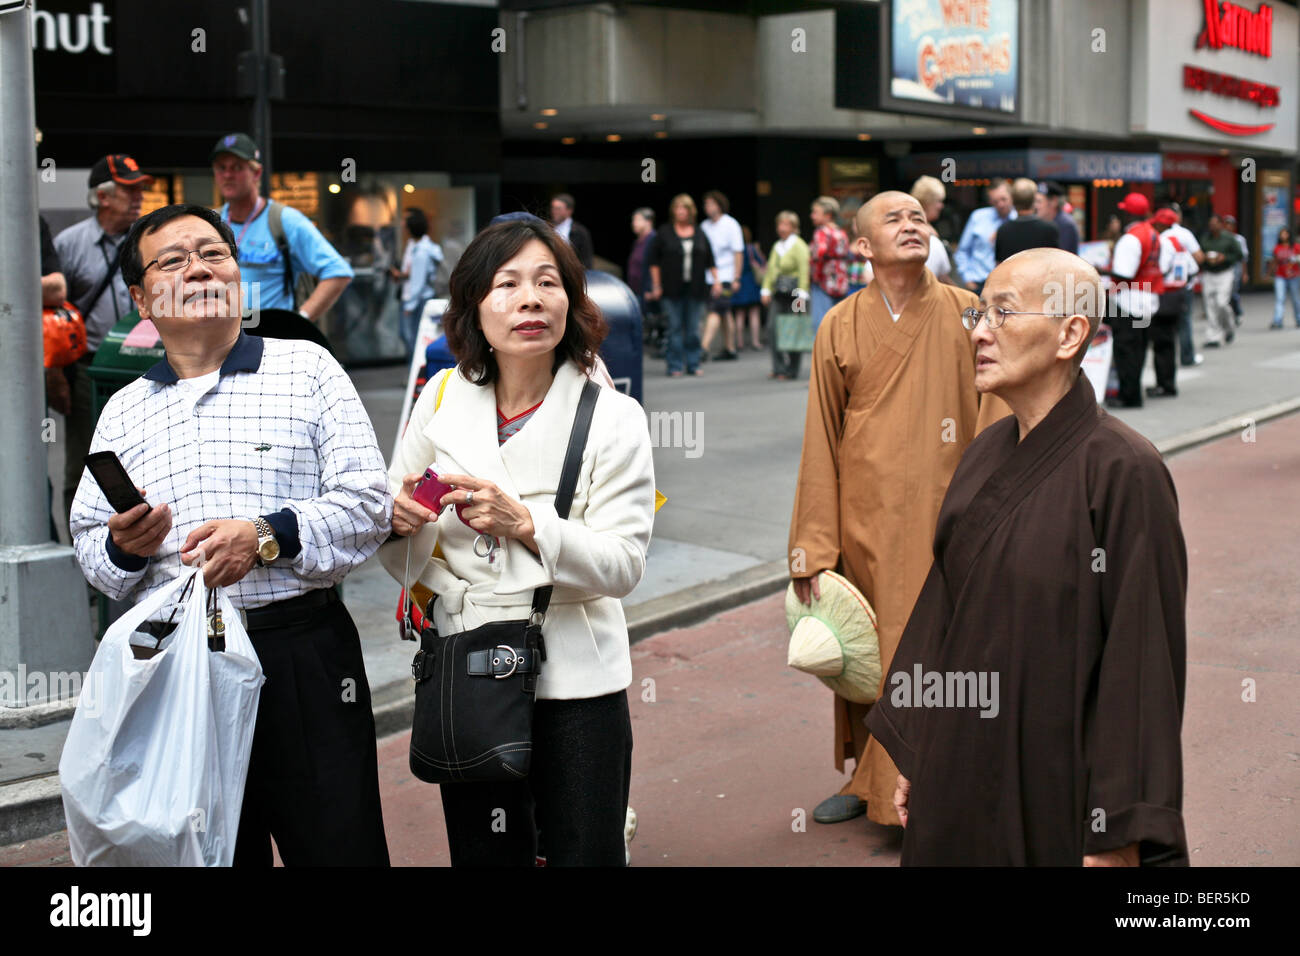 middle aged Japanese tourist couple with two robed Japanese monks in New York City Times Square pedestrian zone - Stock Image